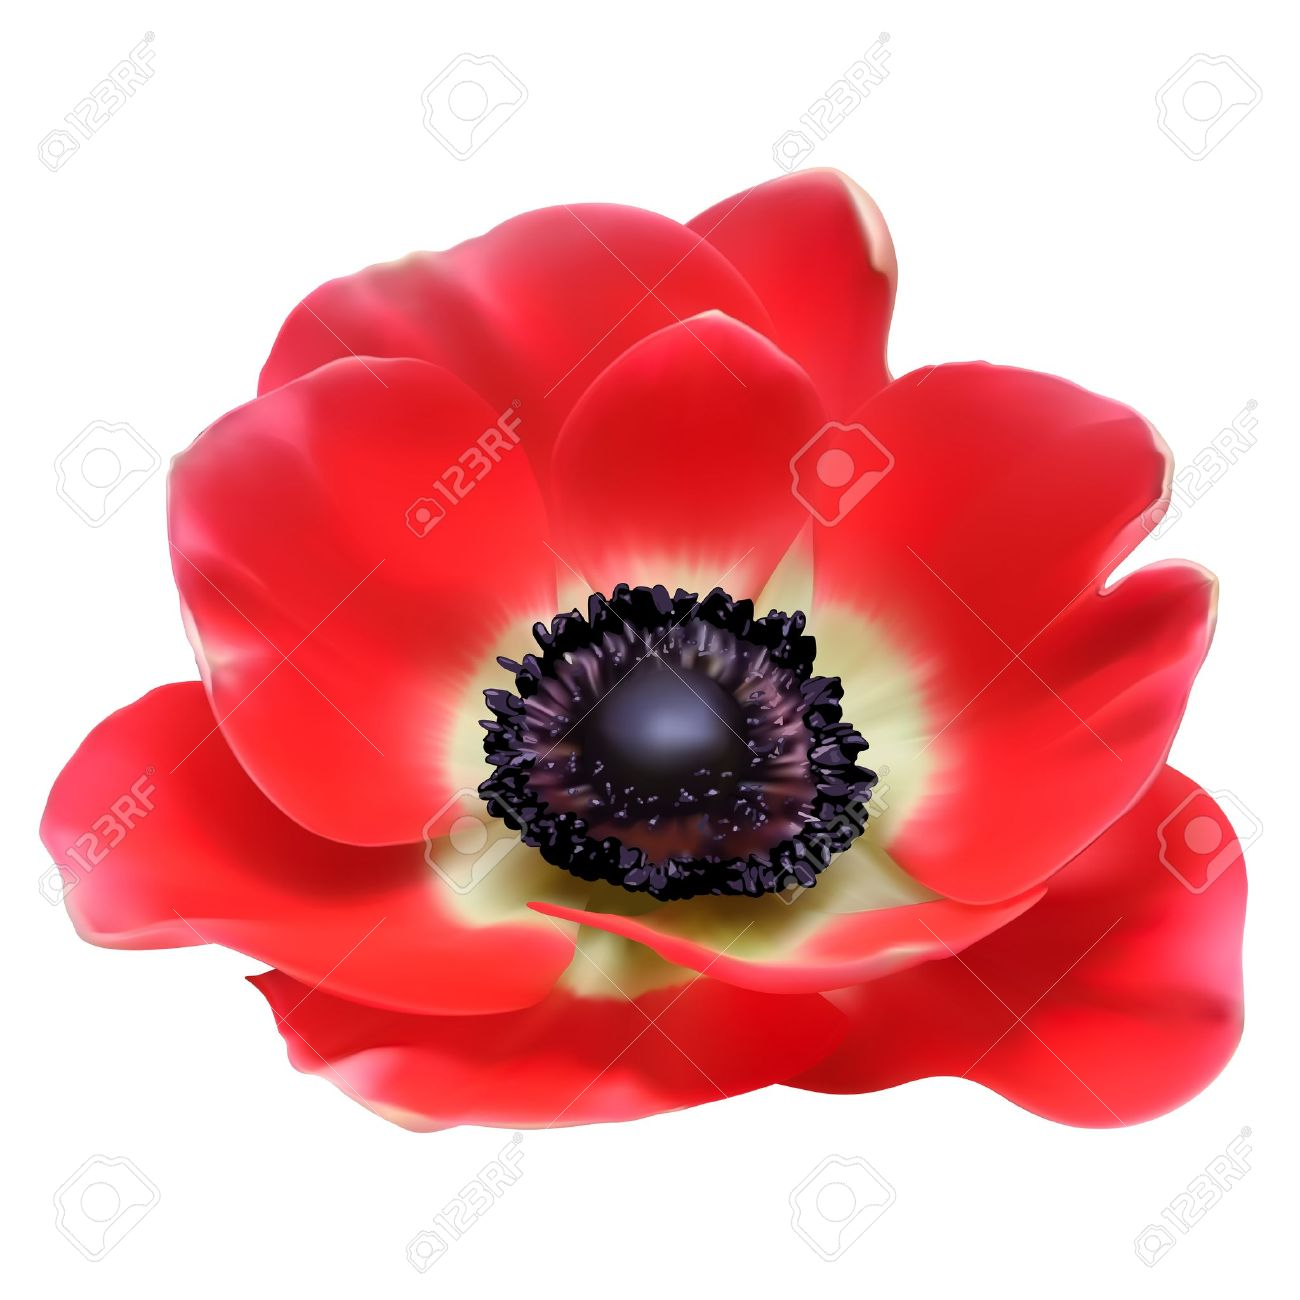 Poppy clipart #9, Download drawings